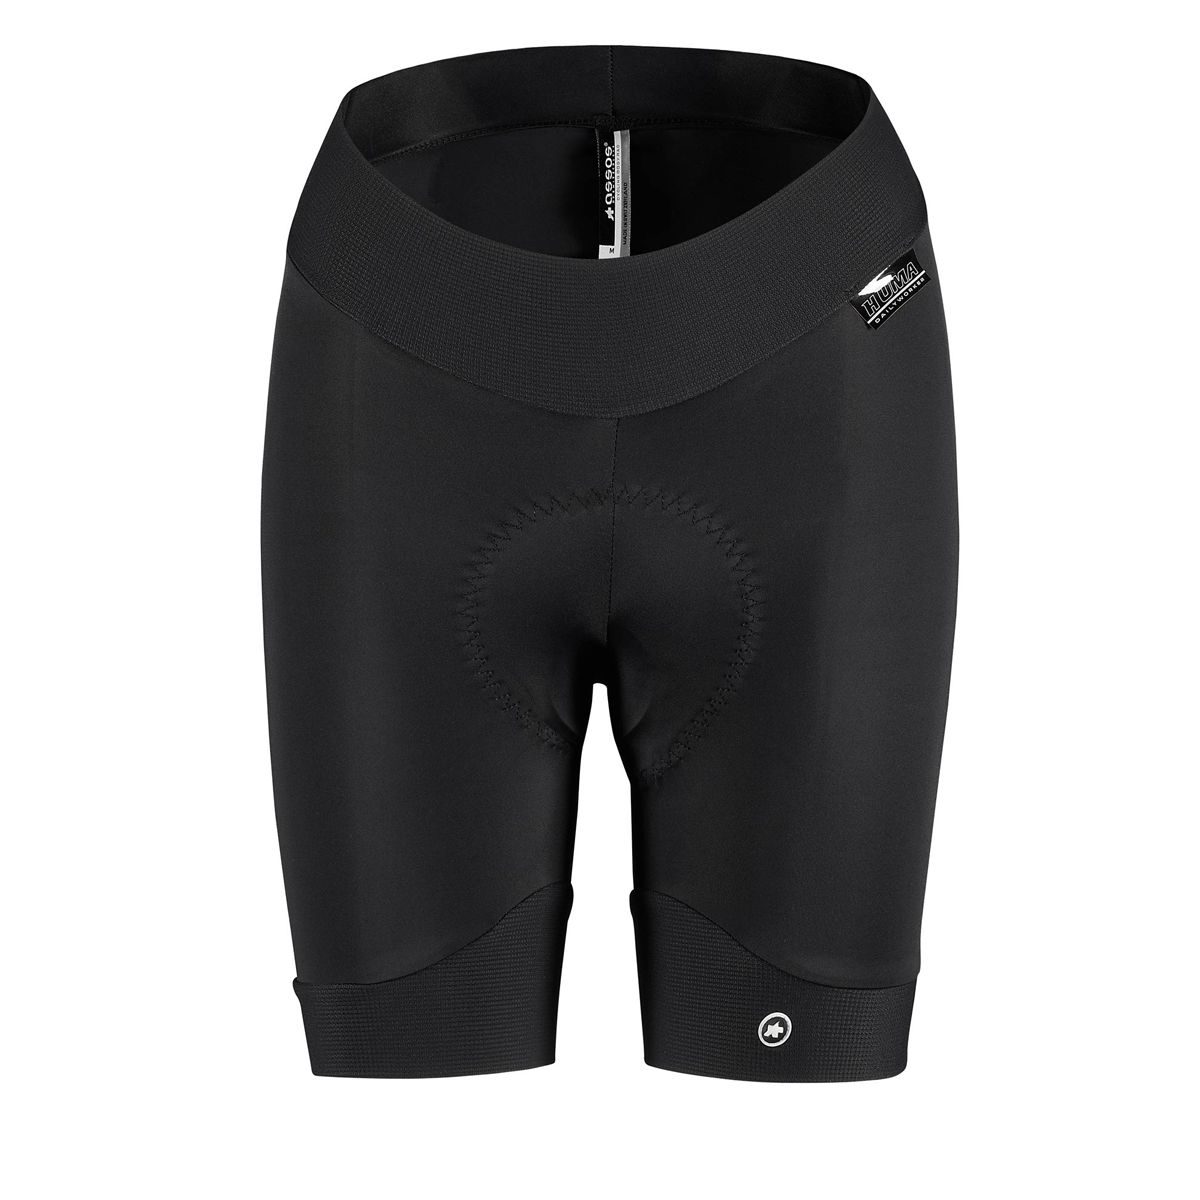 UMA GT HALF SHORTS women's cycling shorts